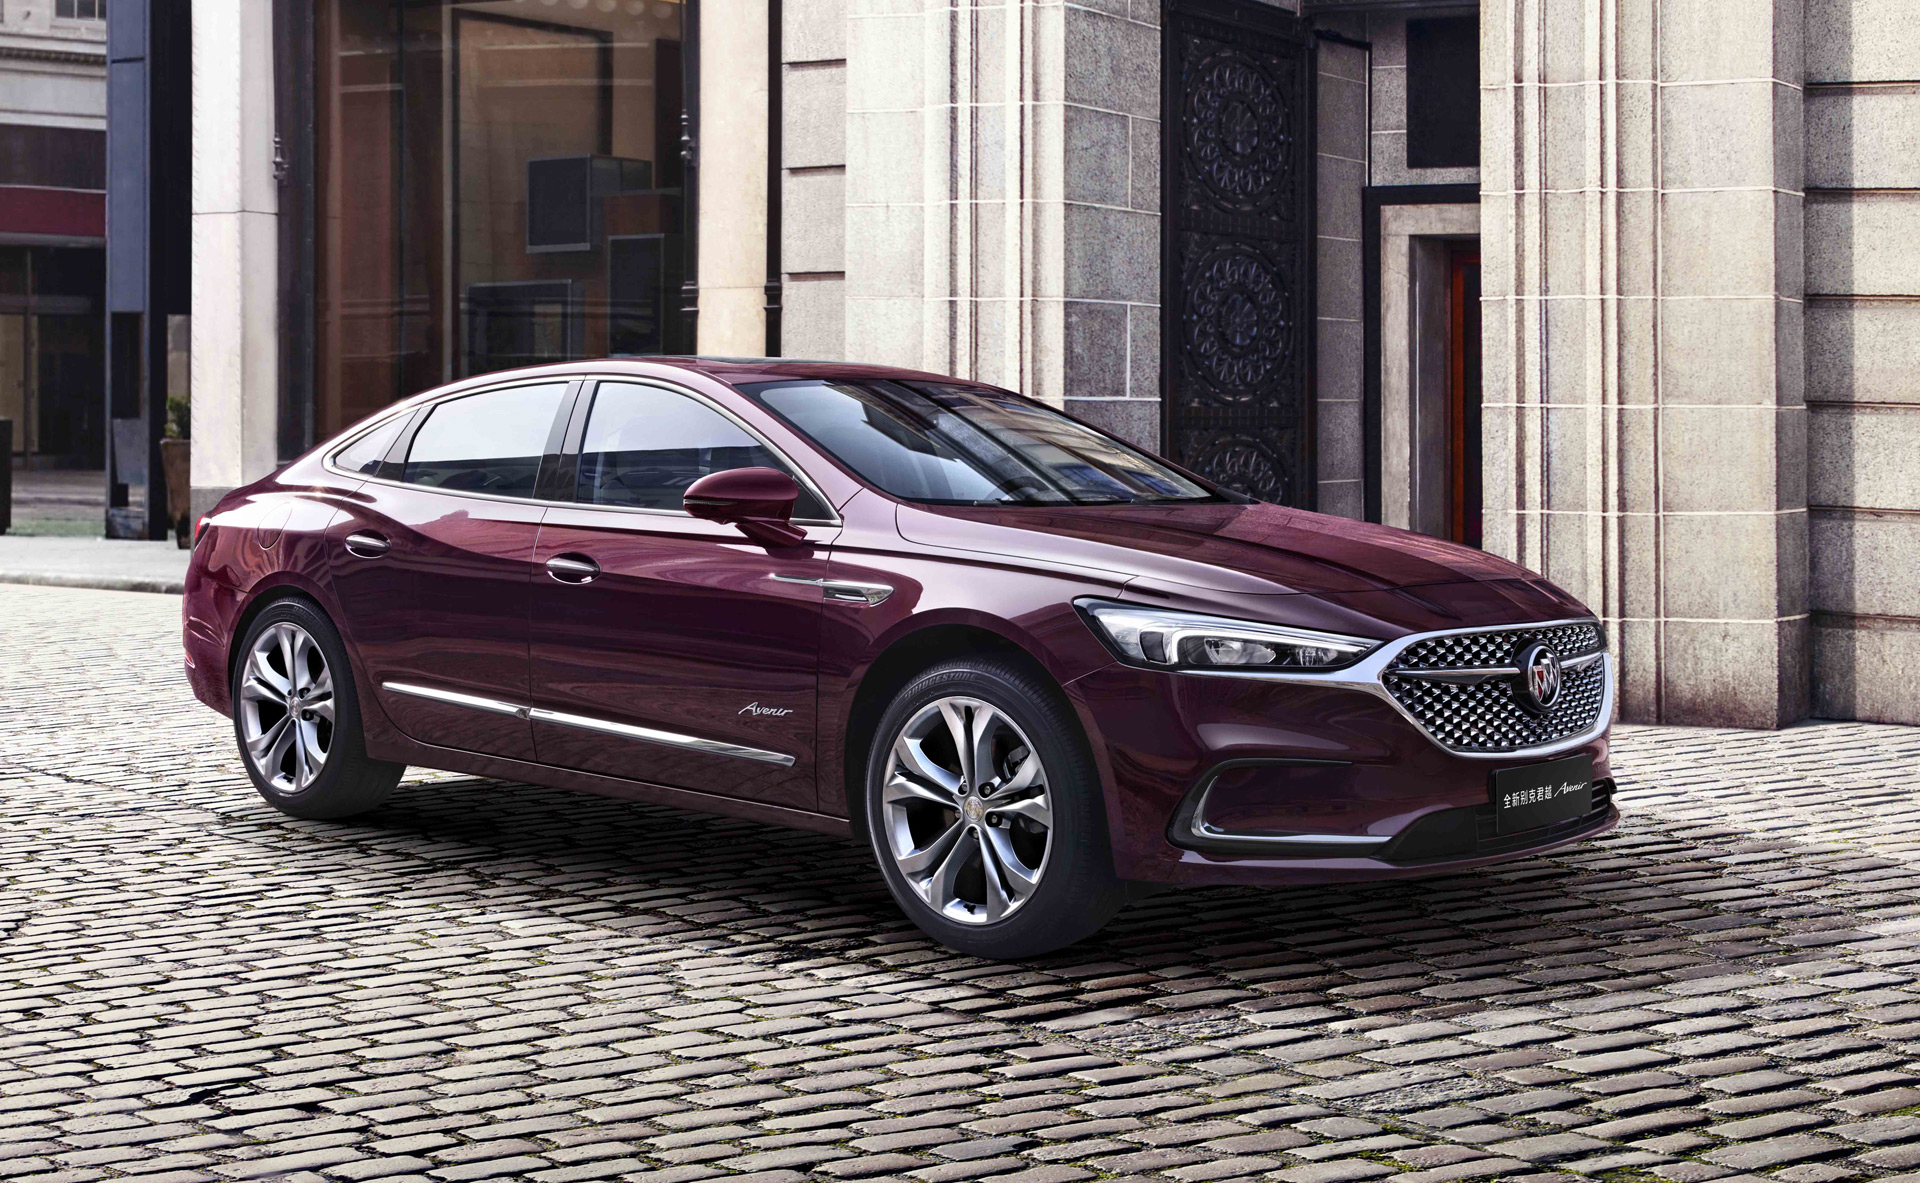 2020 Buick Lacrosse Made Handsome Just As It's Dropped In Us Cost Of A 2022 Buick Lacrosse